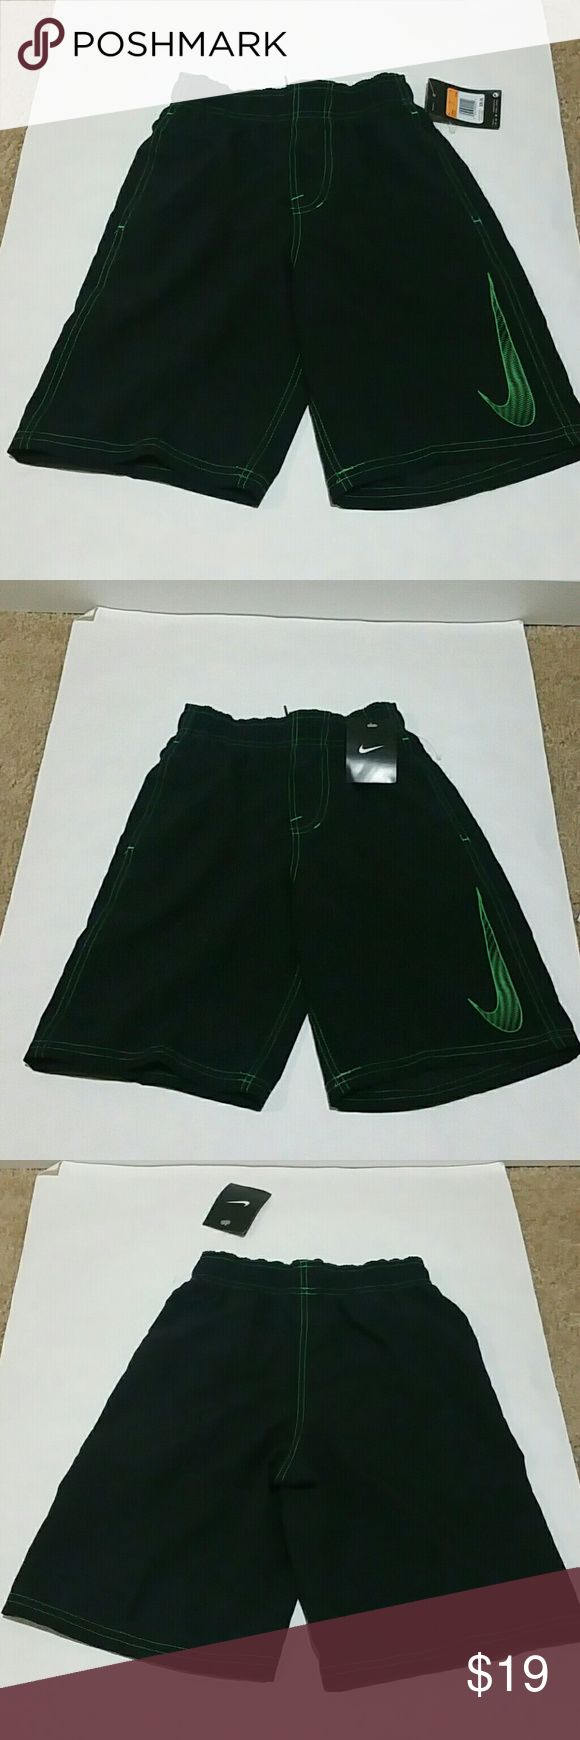 NIKE SWIM SHORTS FOR BOYS SU21475, 721989, 100%POLYESTER, NWT Nike Swim Swim Trunks